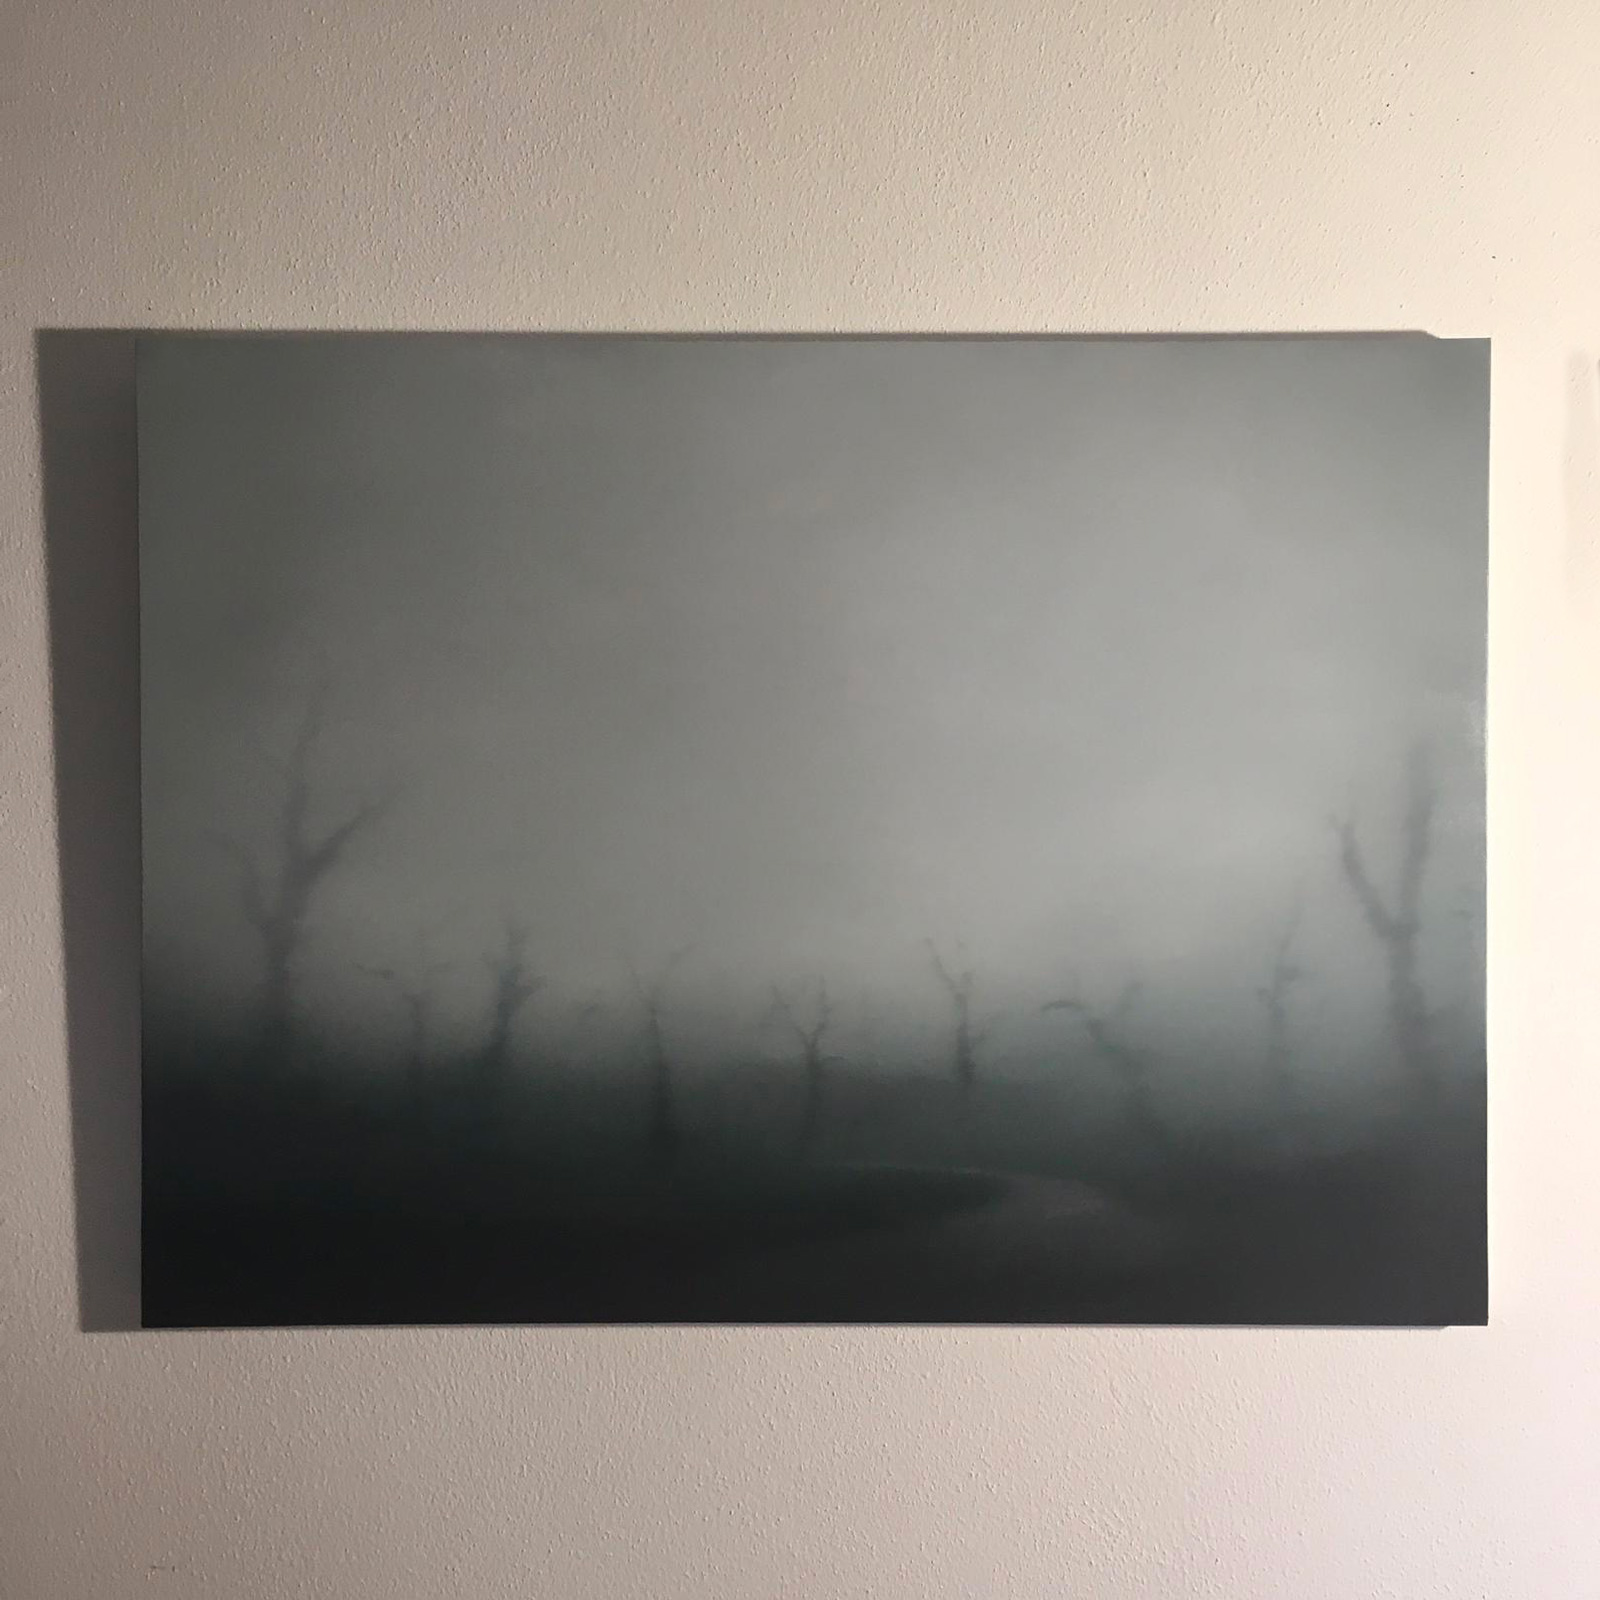 T#133-2019, oil on canvas, 80x110cm